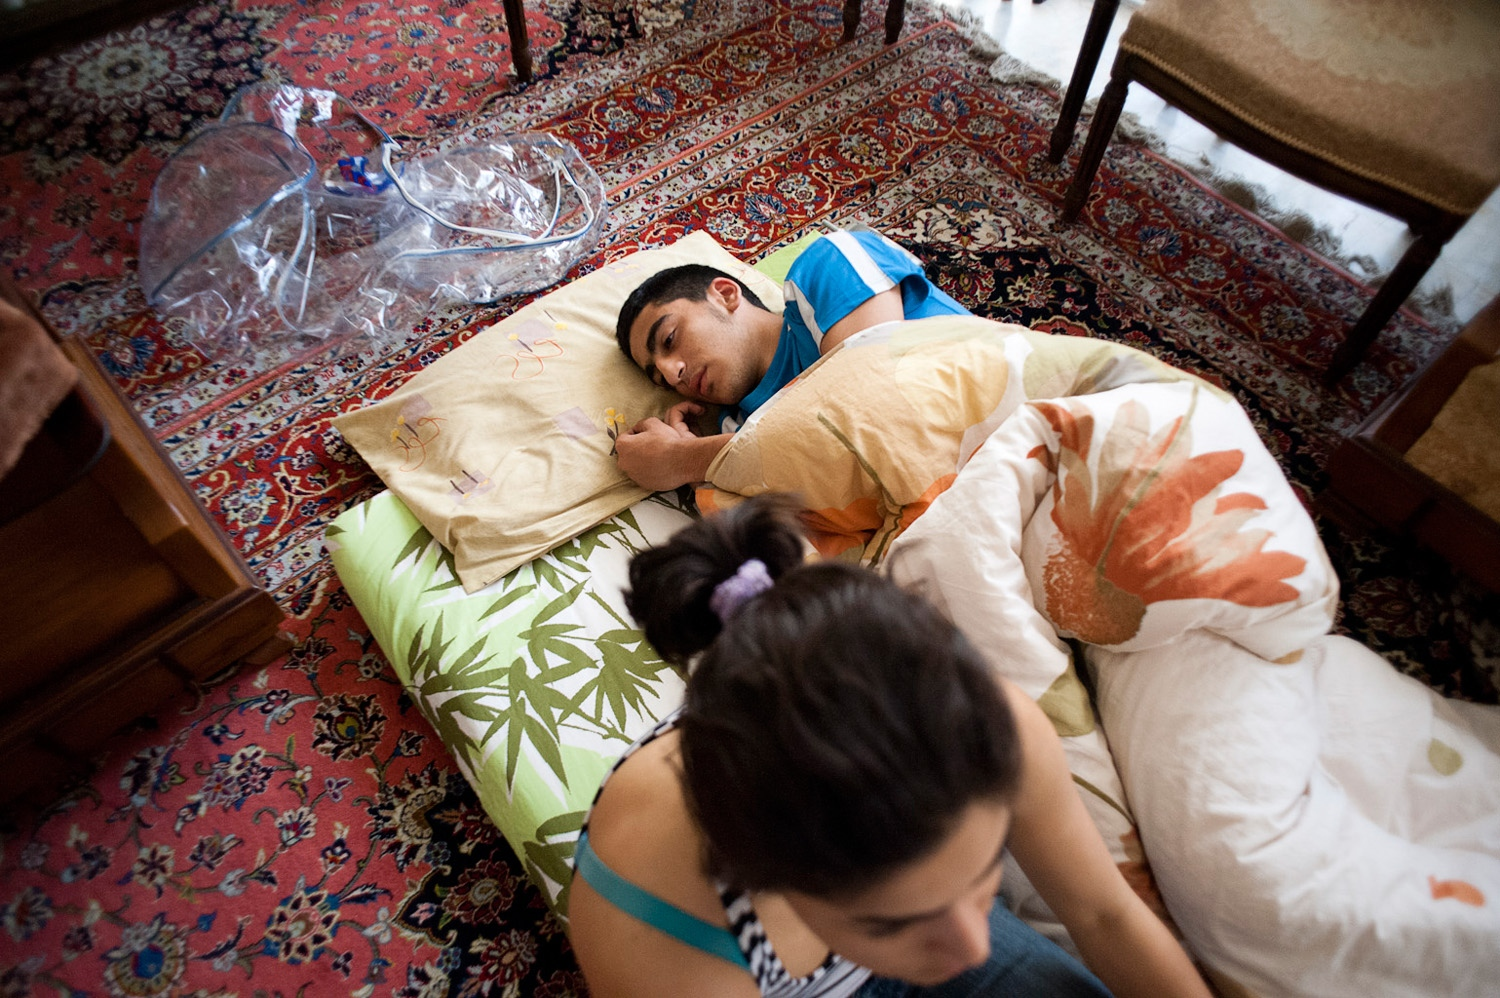 TEHRAN, IRAN -18/06/10 - Soroush, Parastou's brother, lies back on his mattress as Parastou and her mom continue to chat about her move.